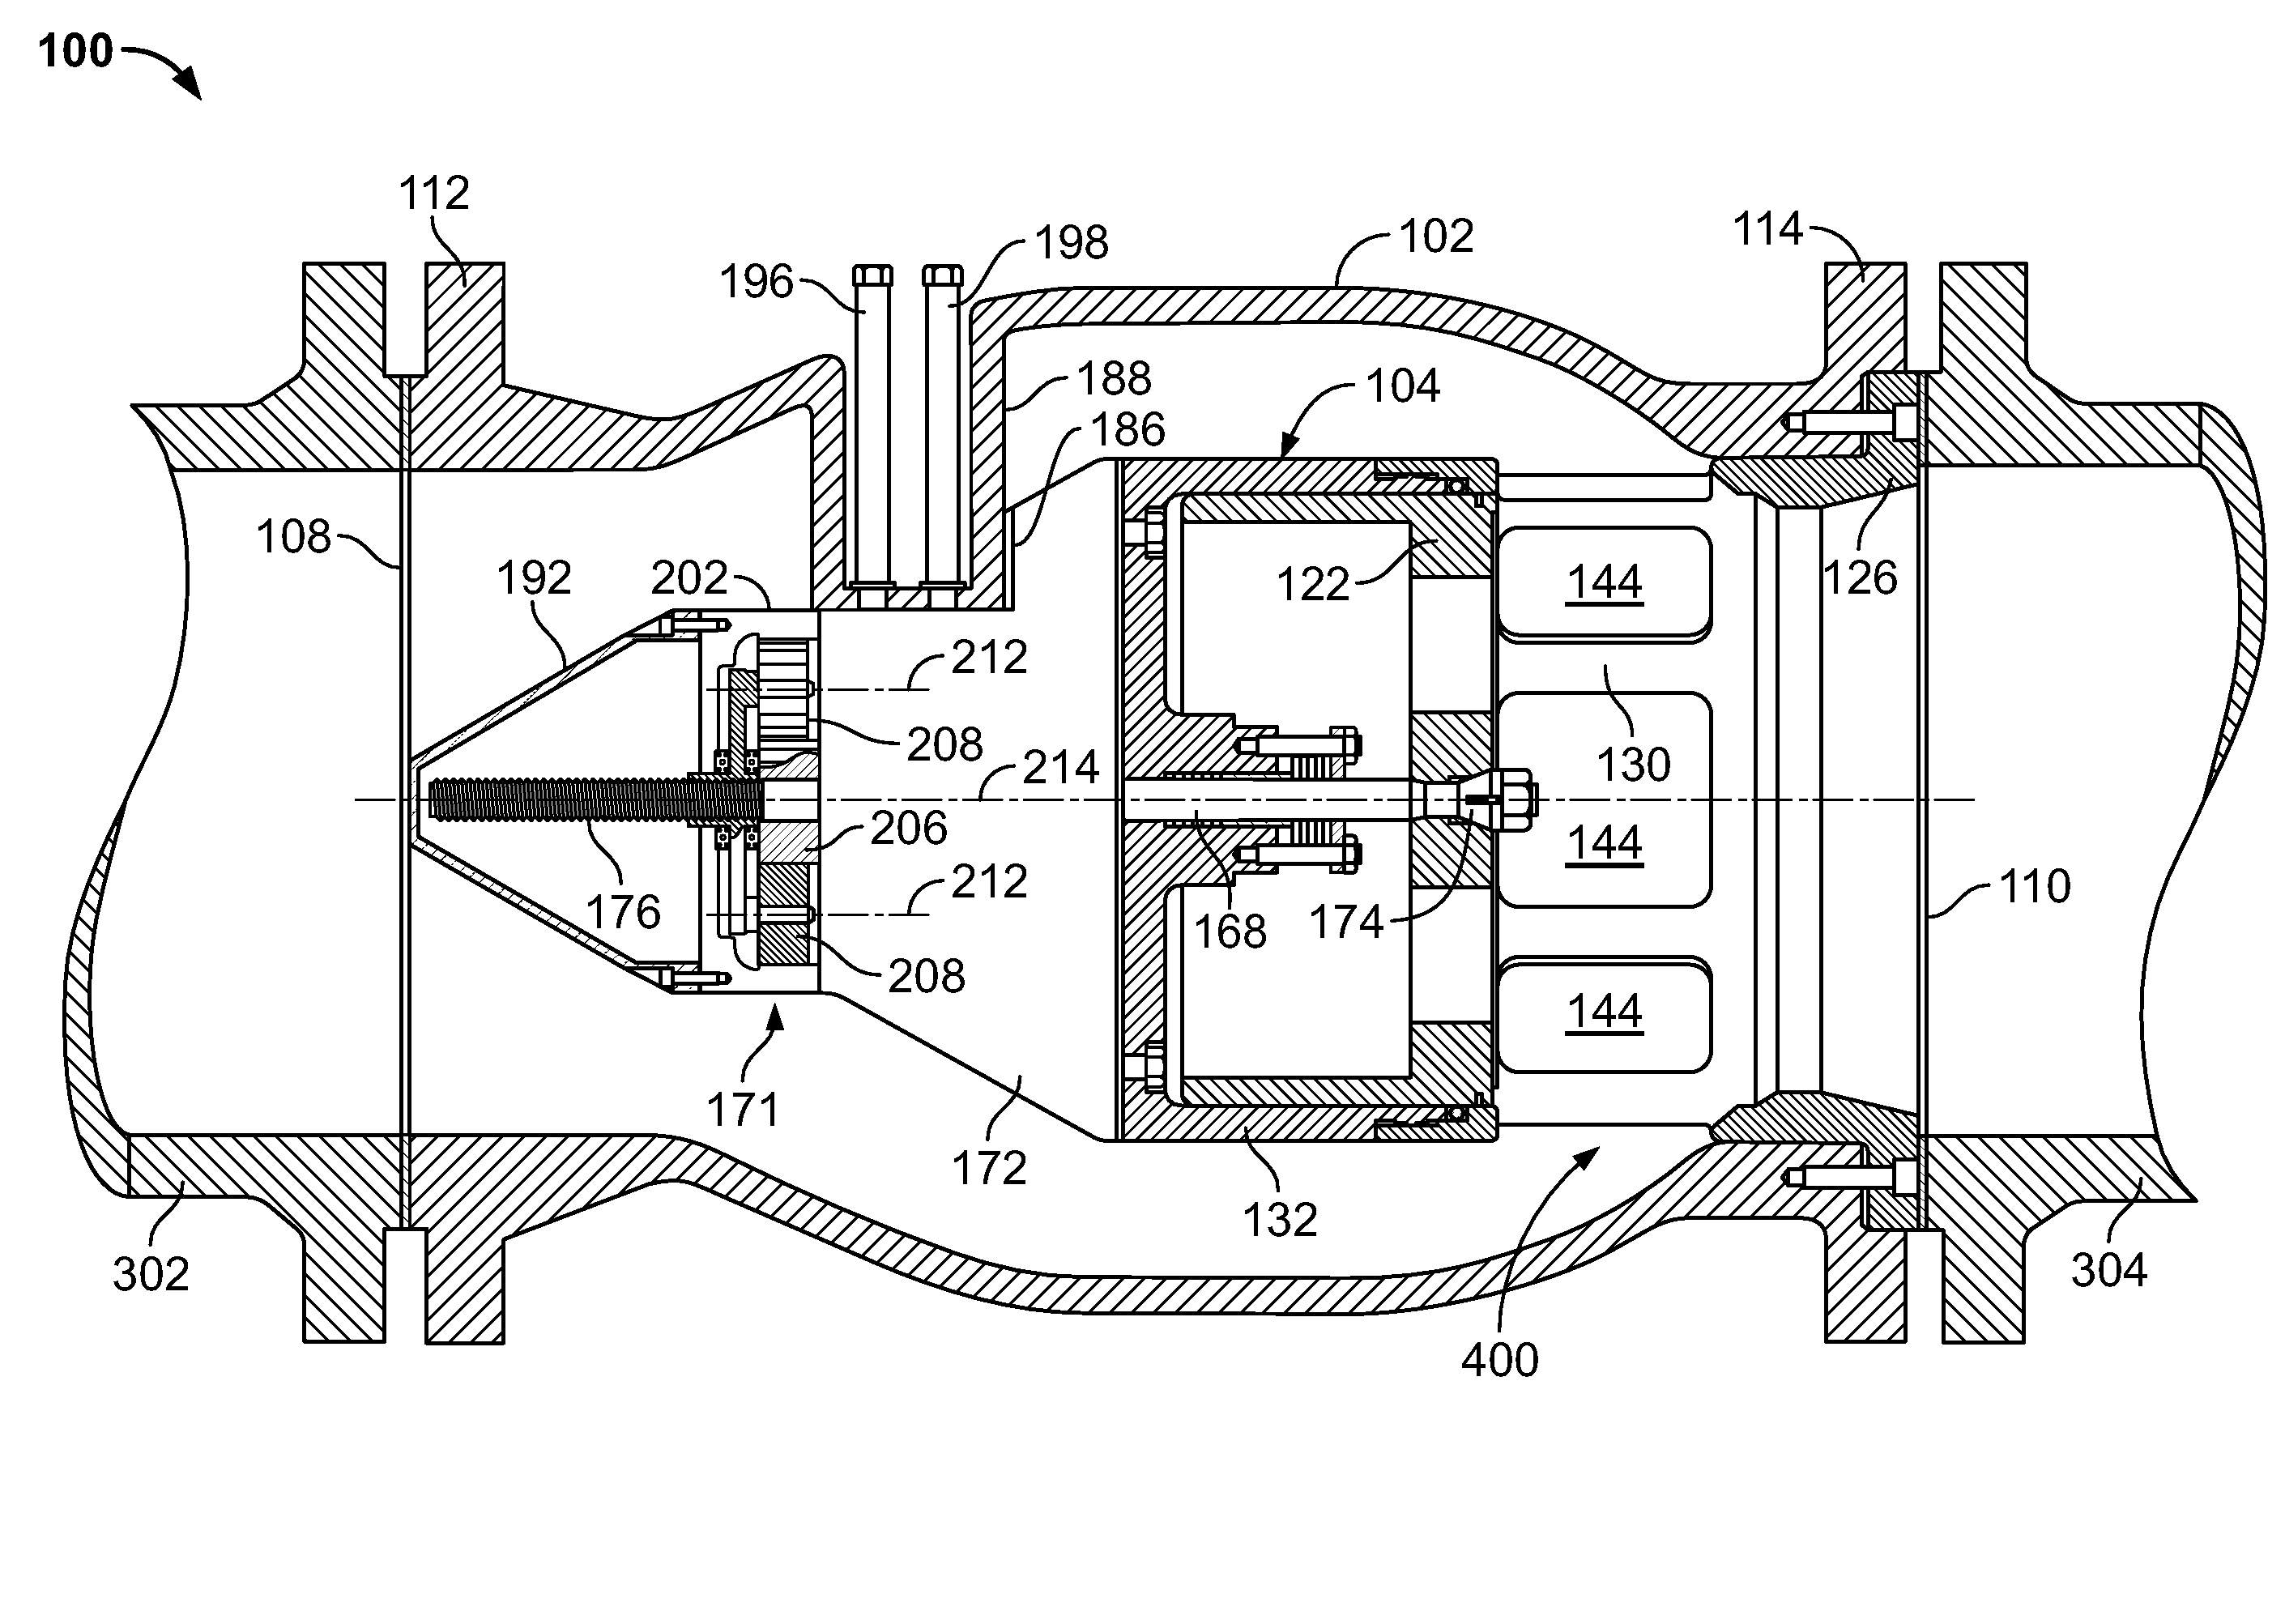 Axial Flow Regulator : Patent us axial flow control valves having an